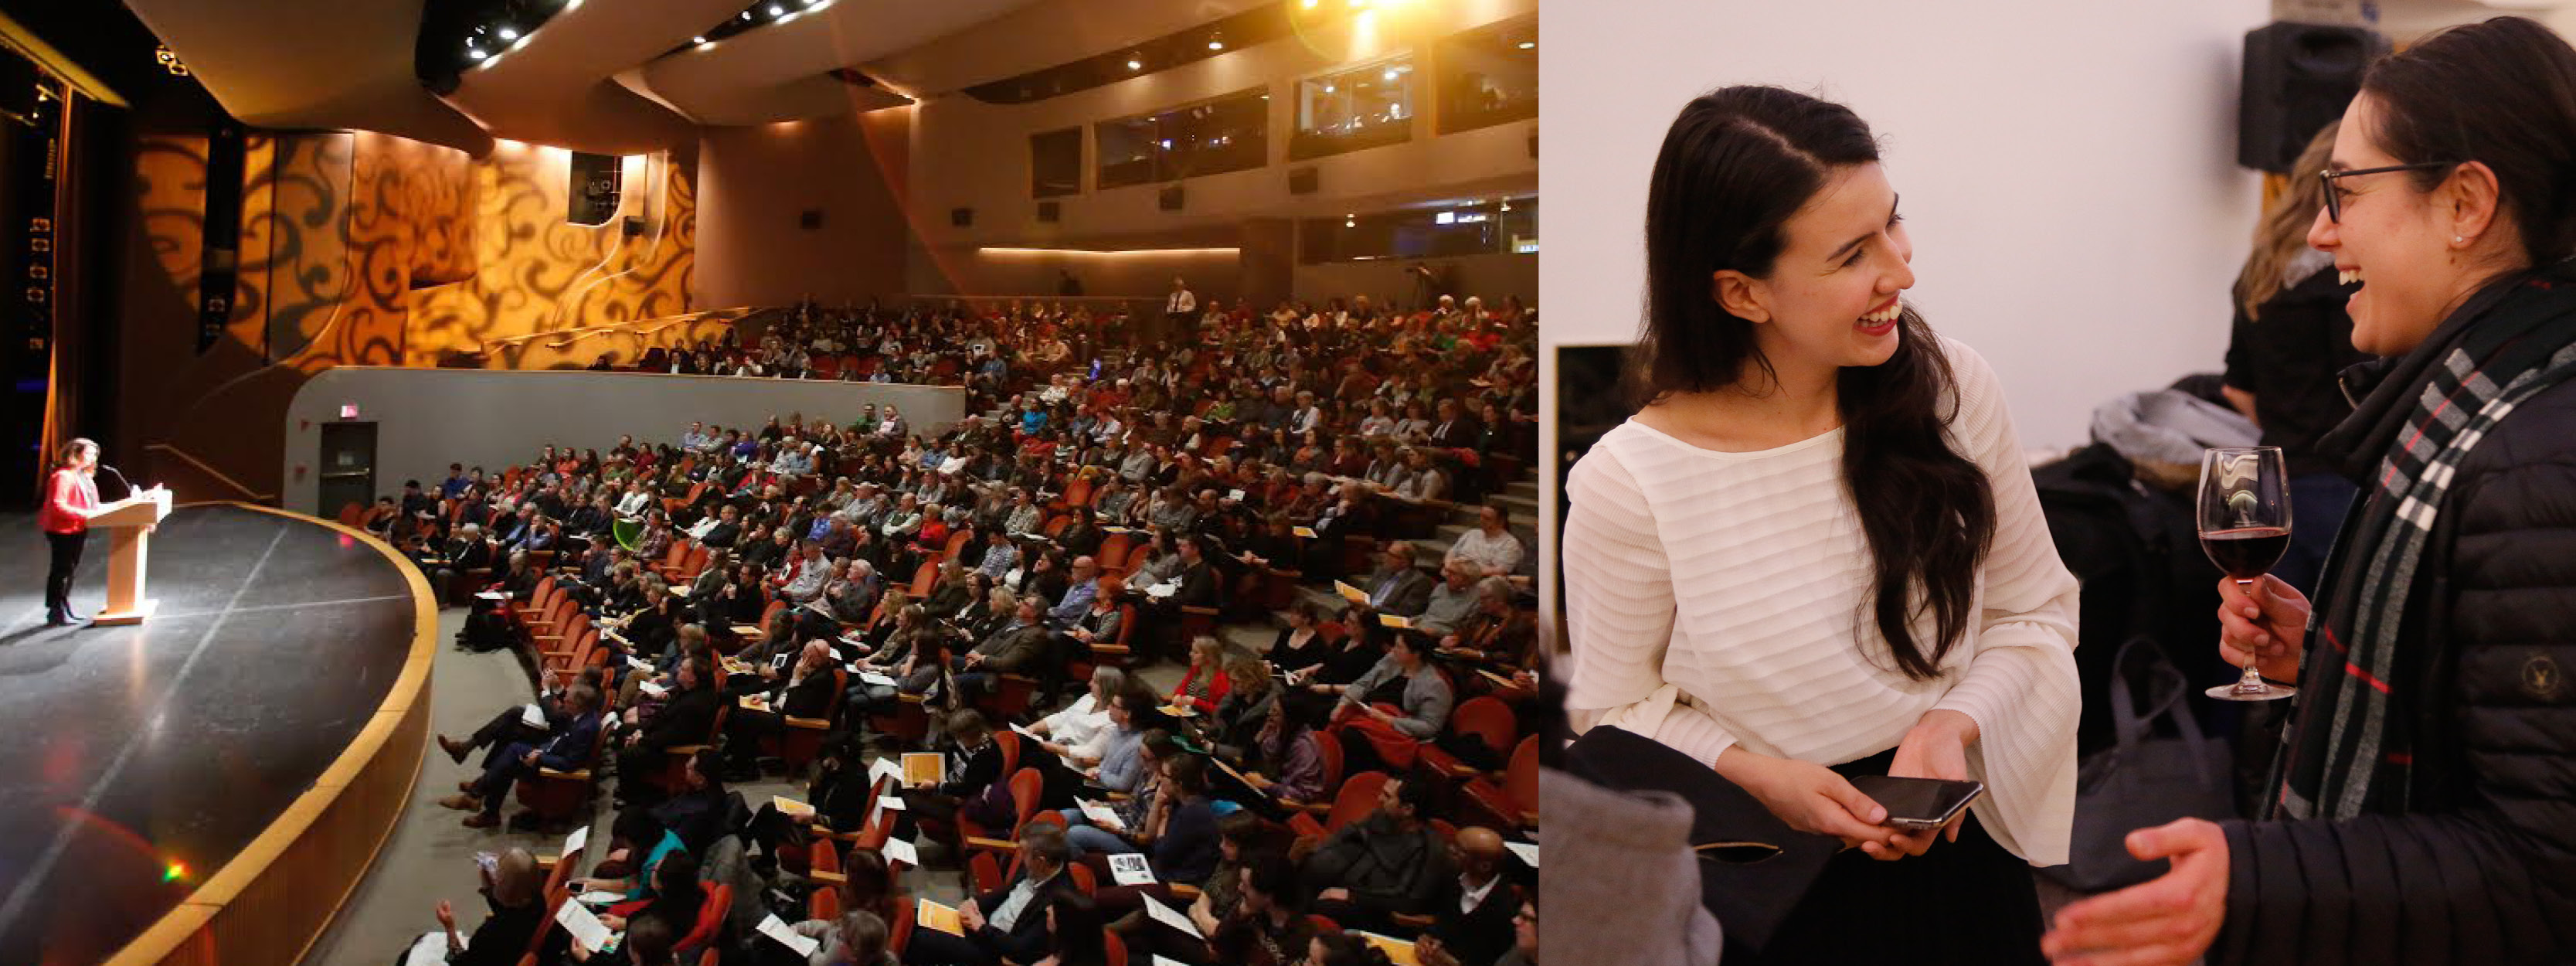 Audience and reception